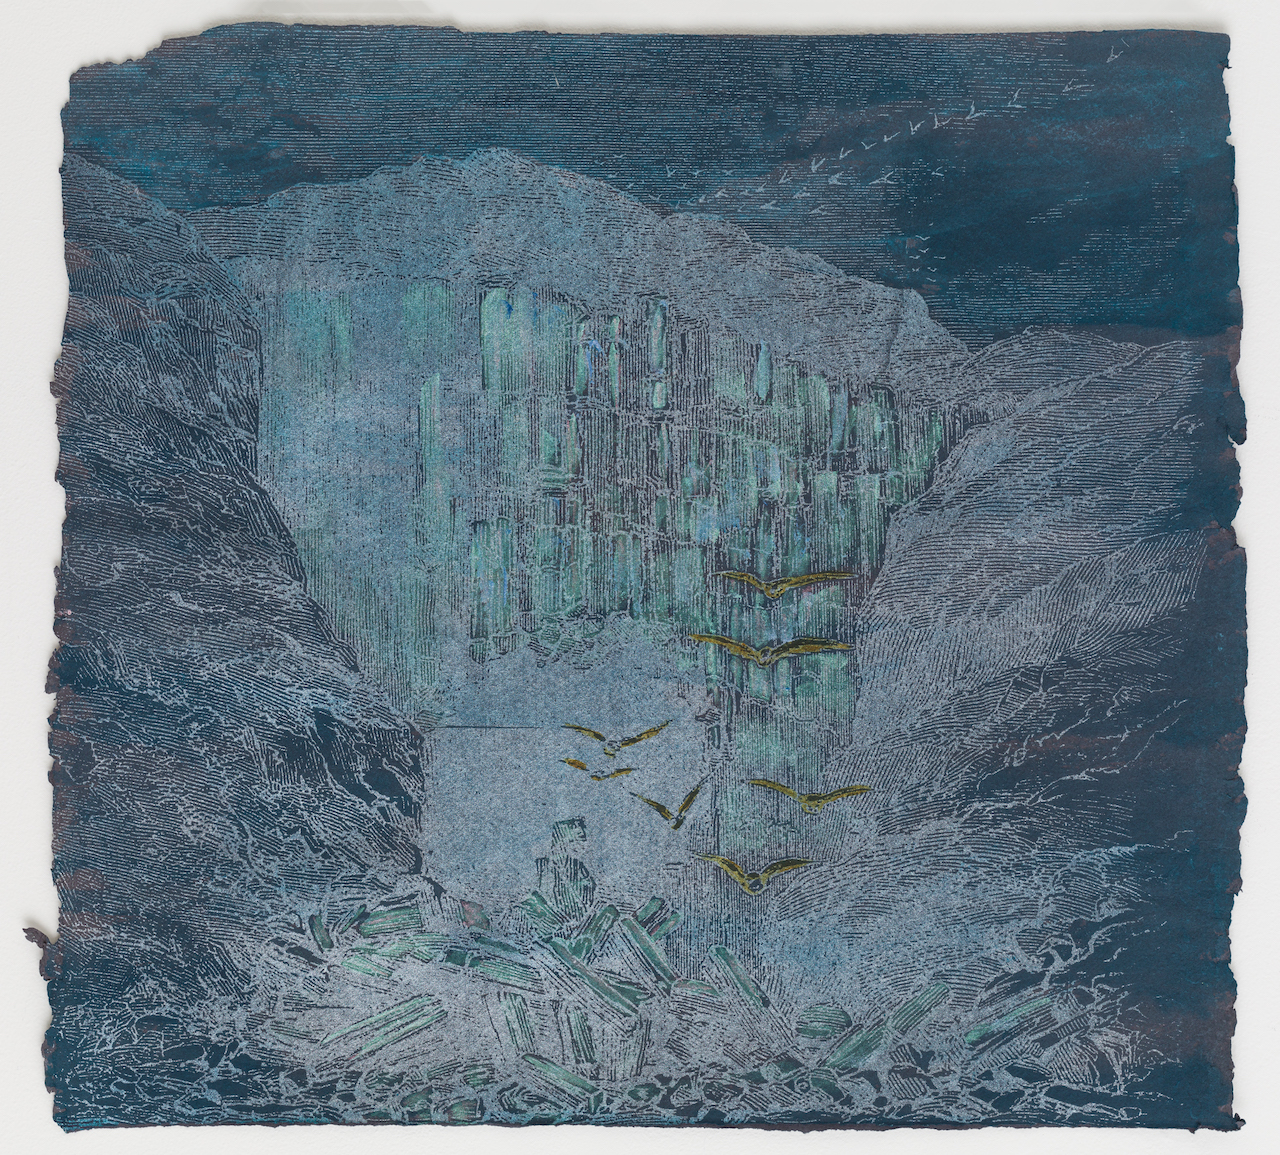 Rita Robillard - Icy Waters Variable Edition 2/5 - 20 x 20, Screen print and painting on paper